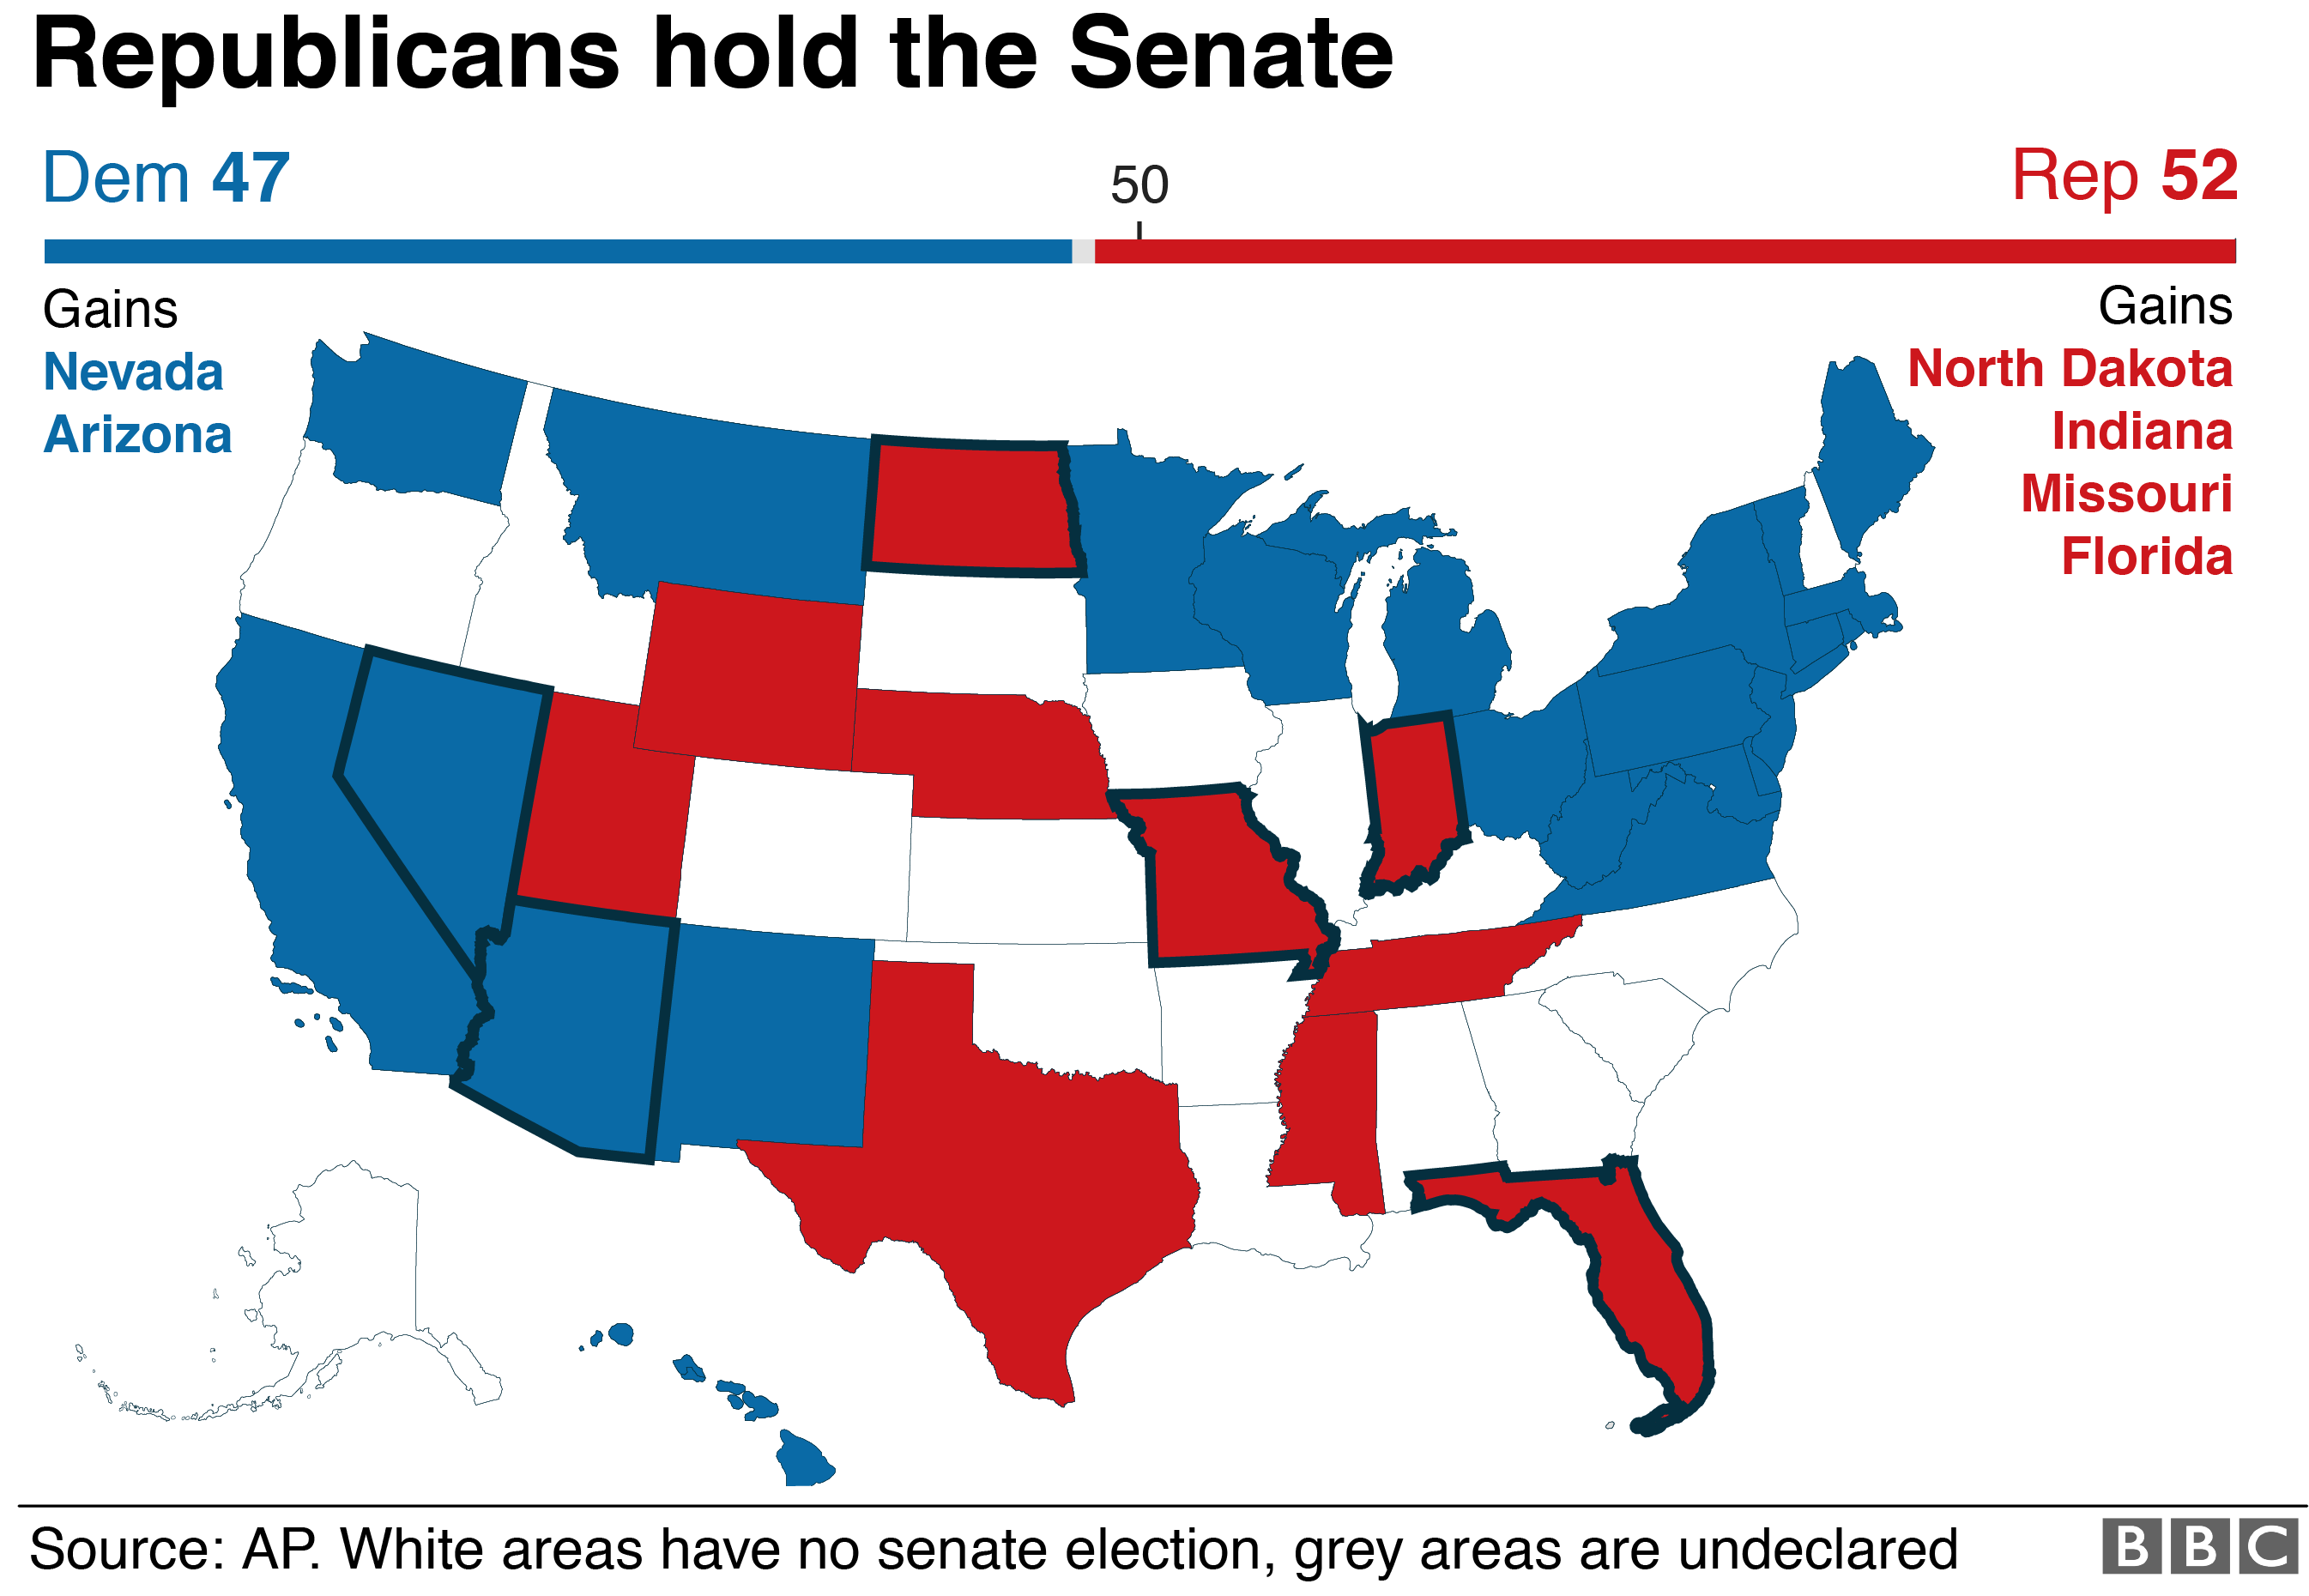 Map showing results for the Senate, with Democrats on 47 and Republicans on 52